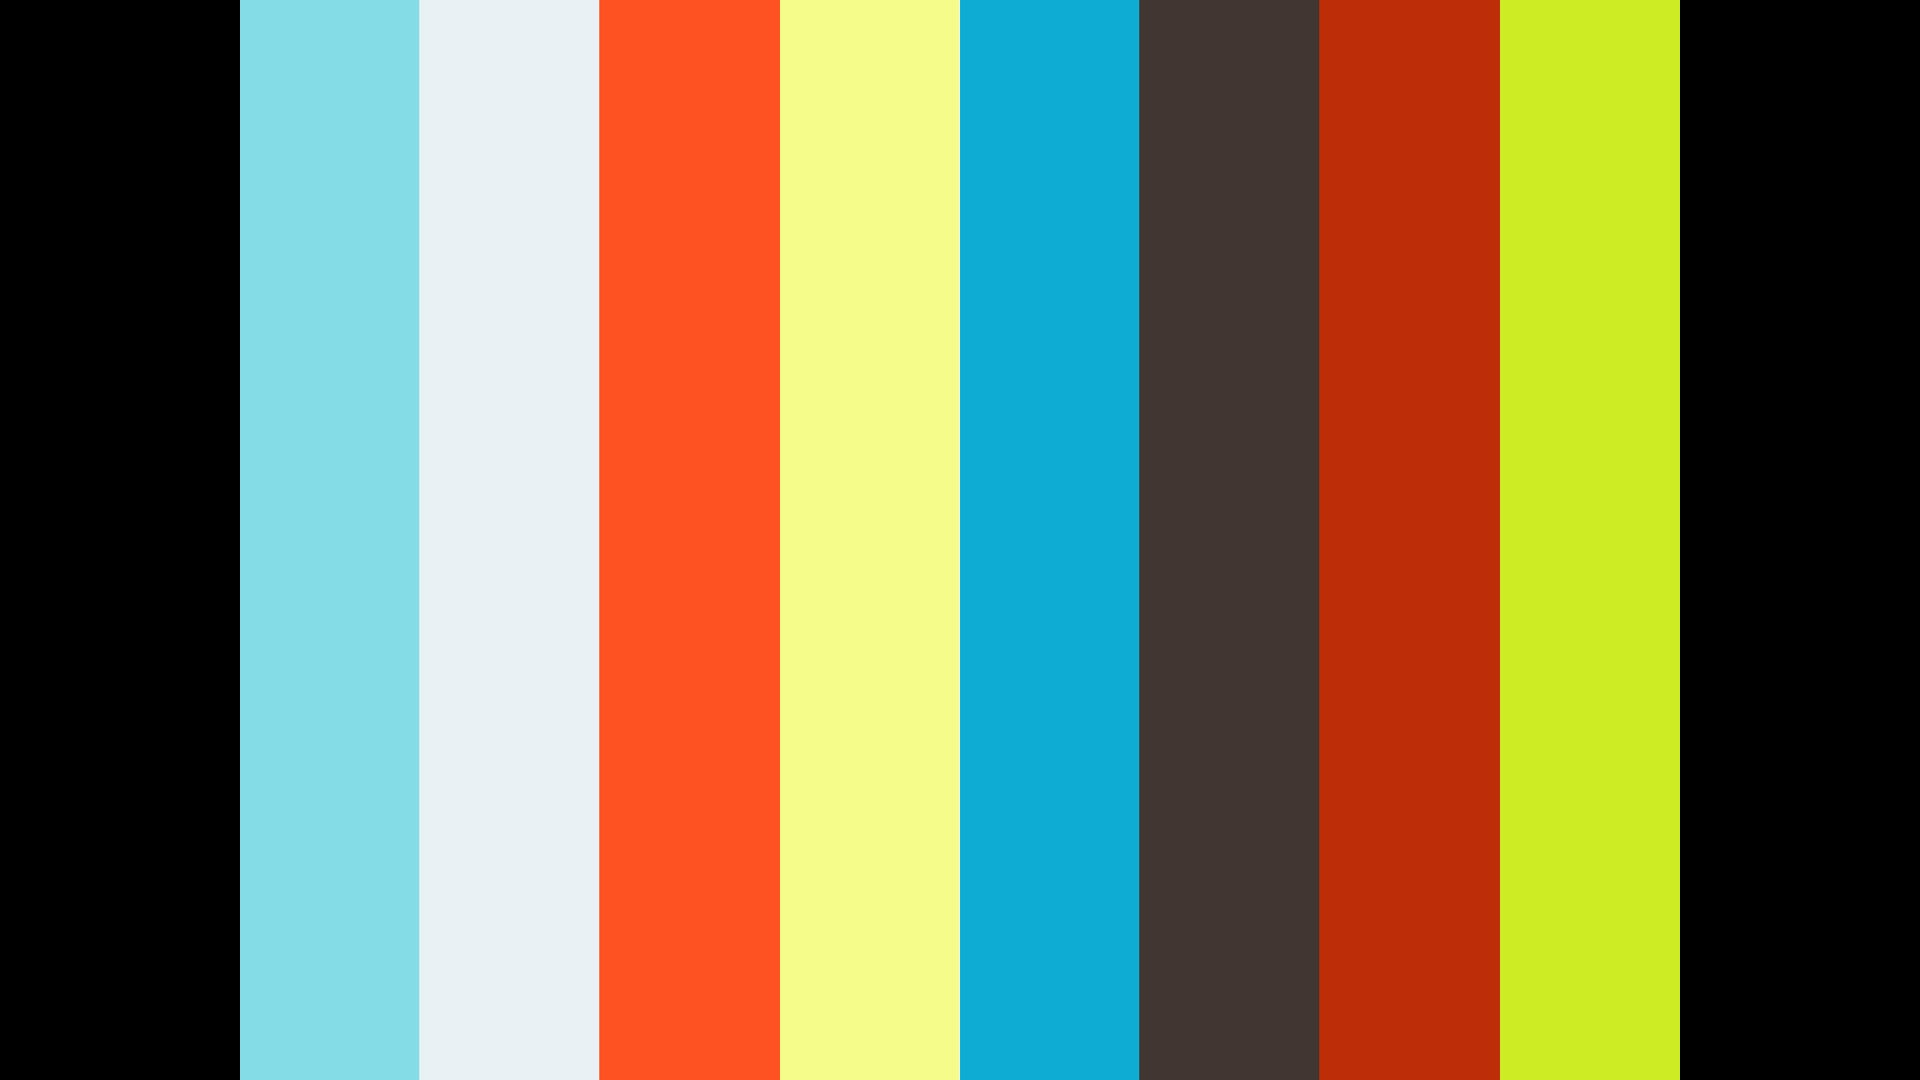 What if I don't know all of my creditors and I need to file bankruptcy?